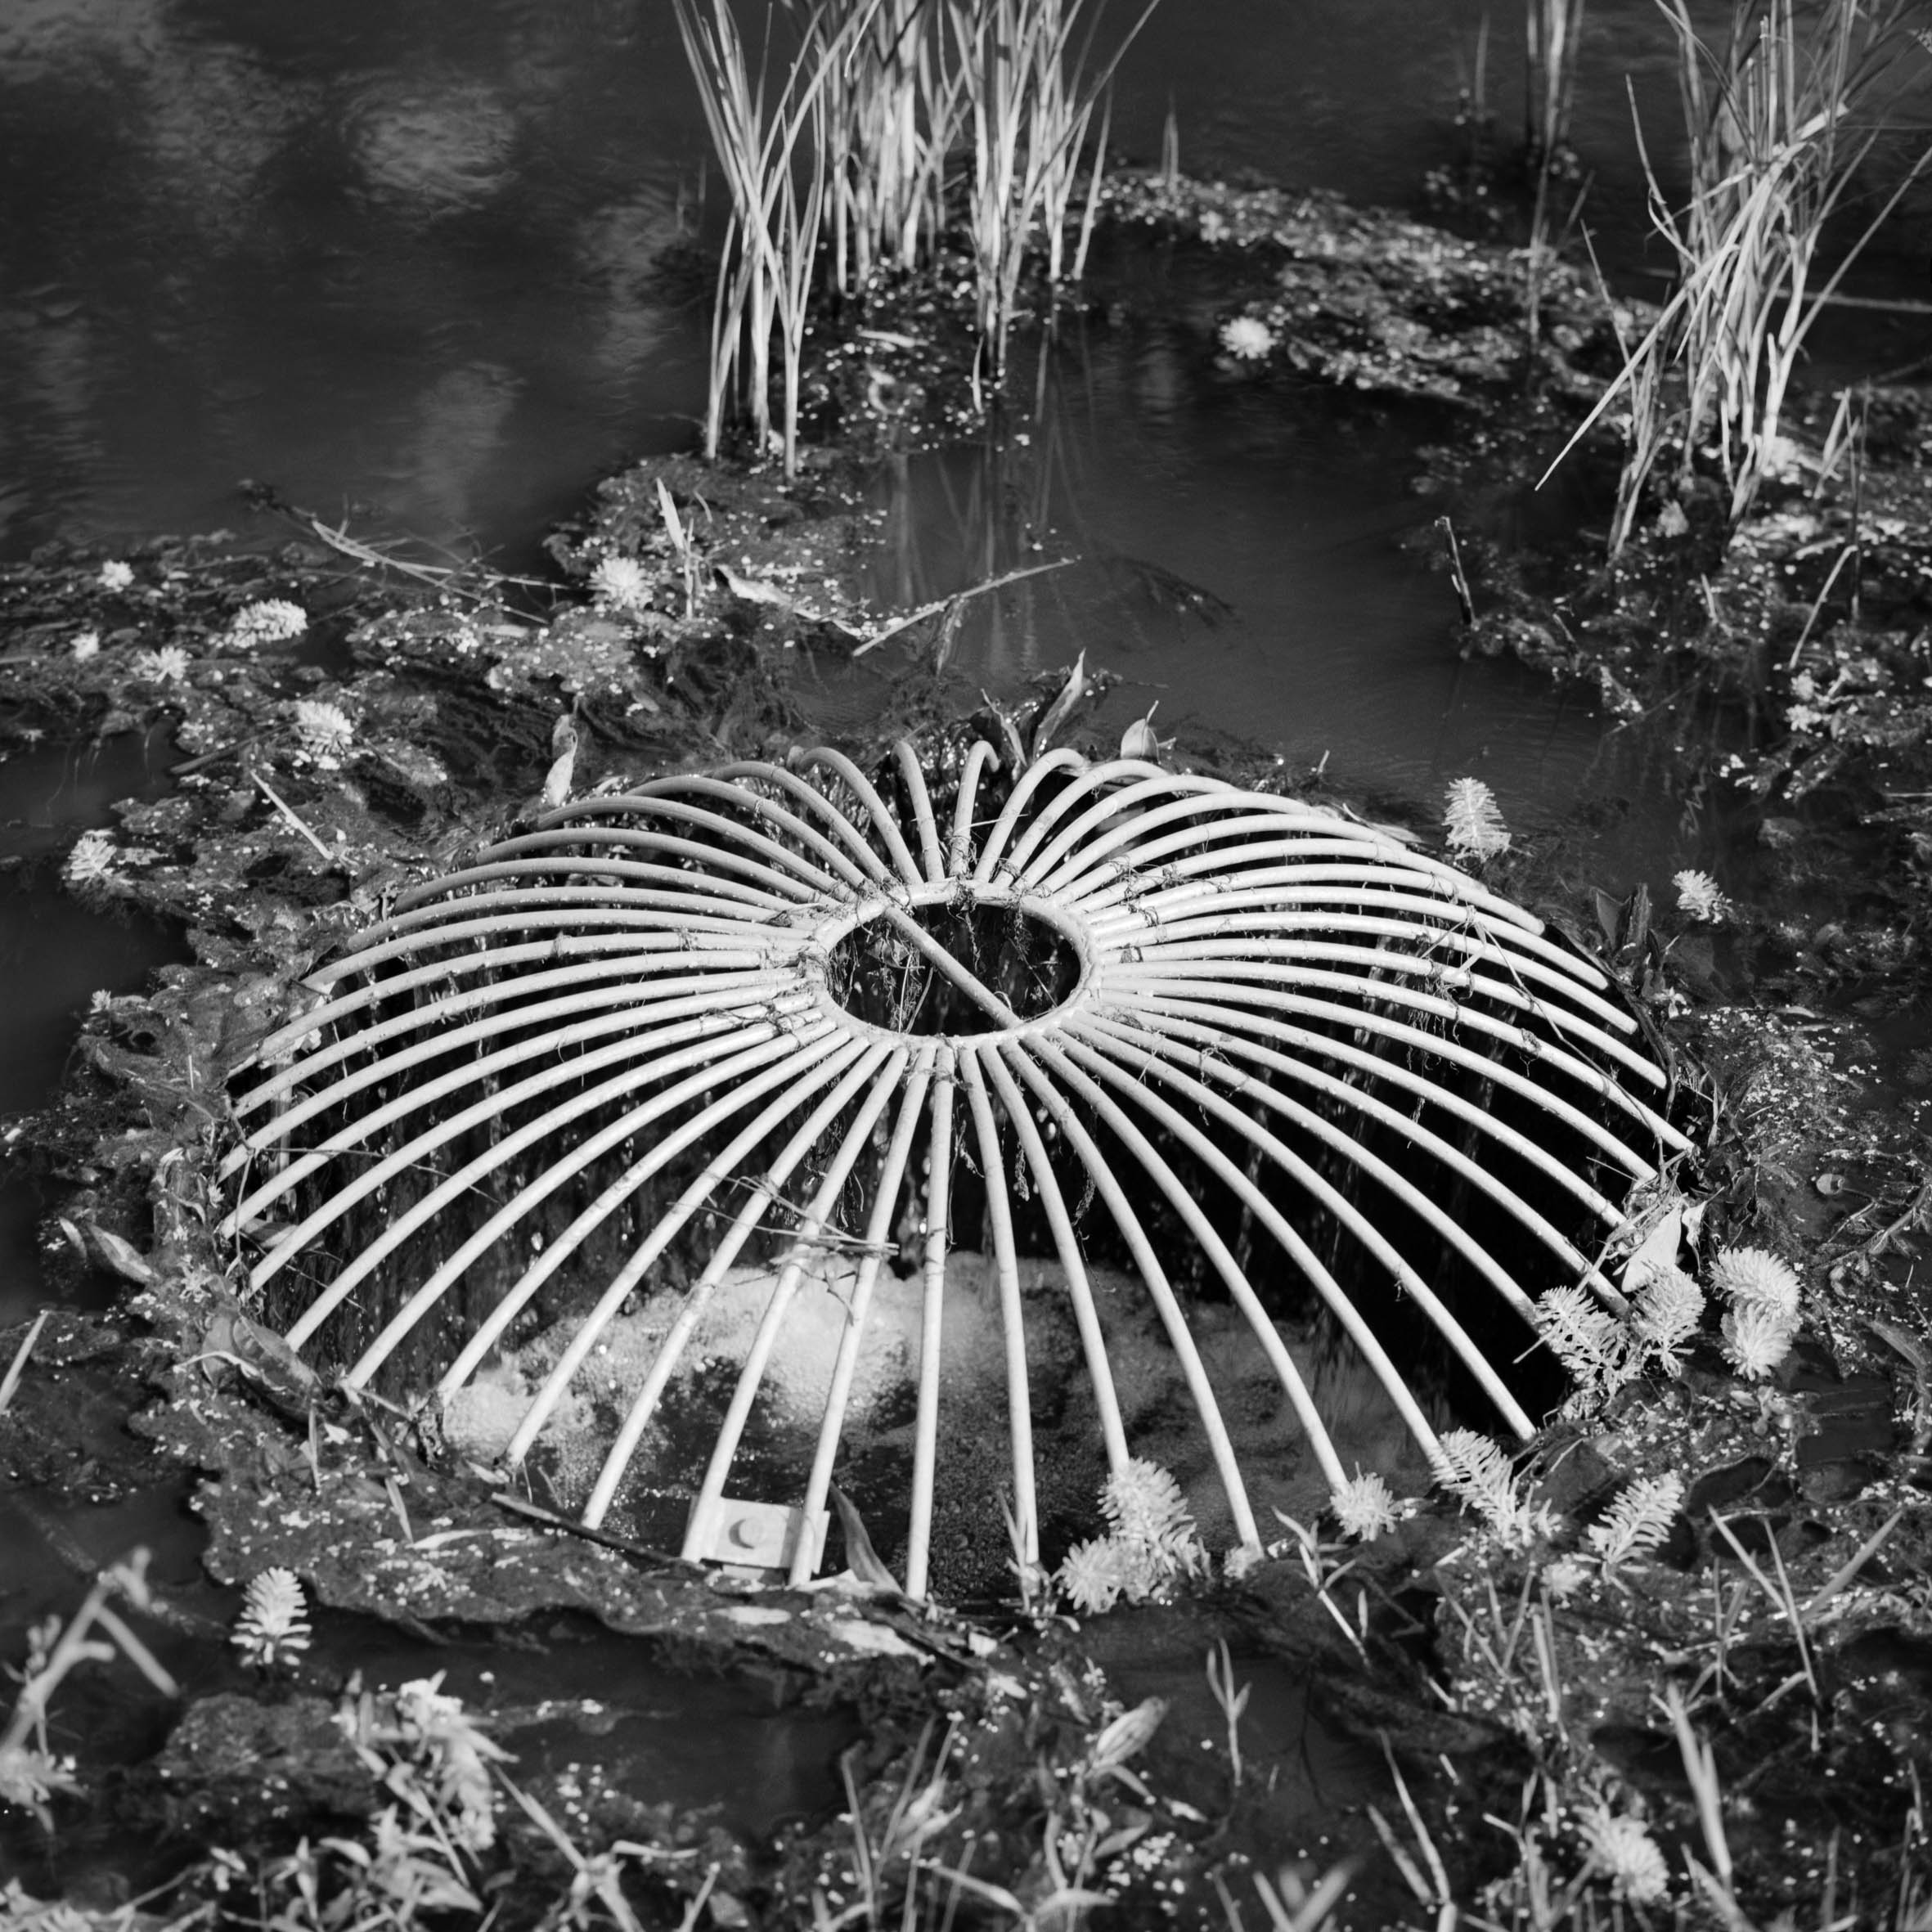 Stormwater Reserve II   2016,  C-Type print,  edition of 5 + 1 AP,  280mm x 280mm